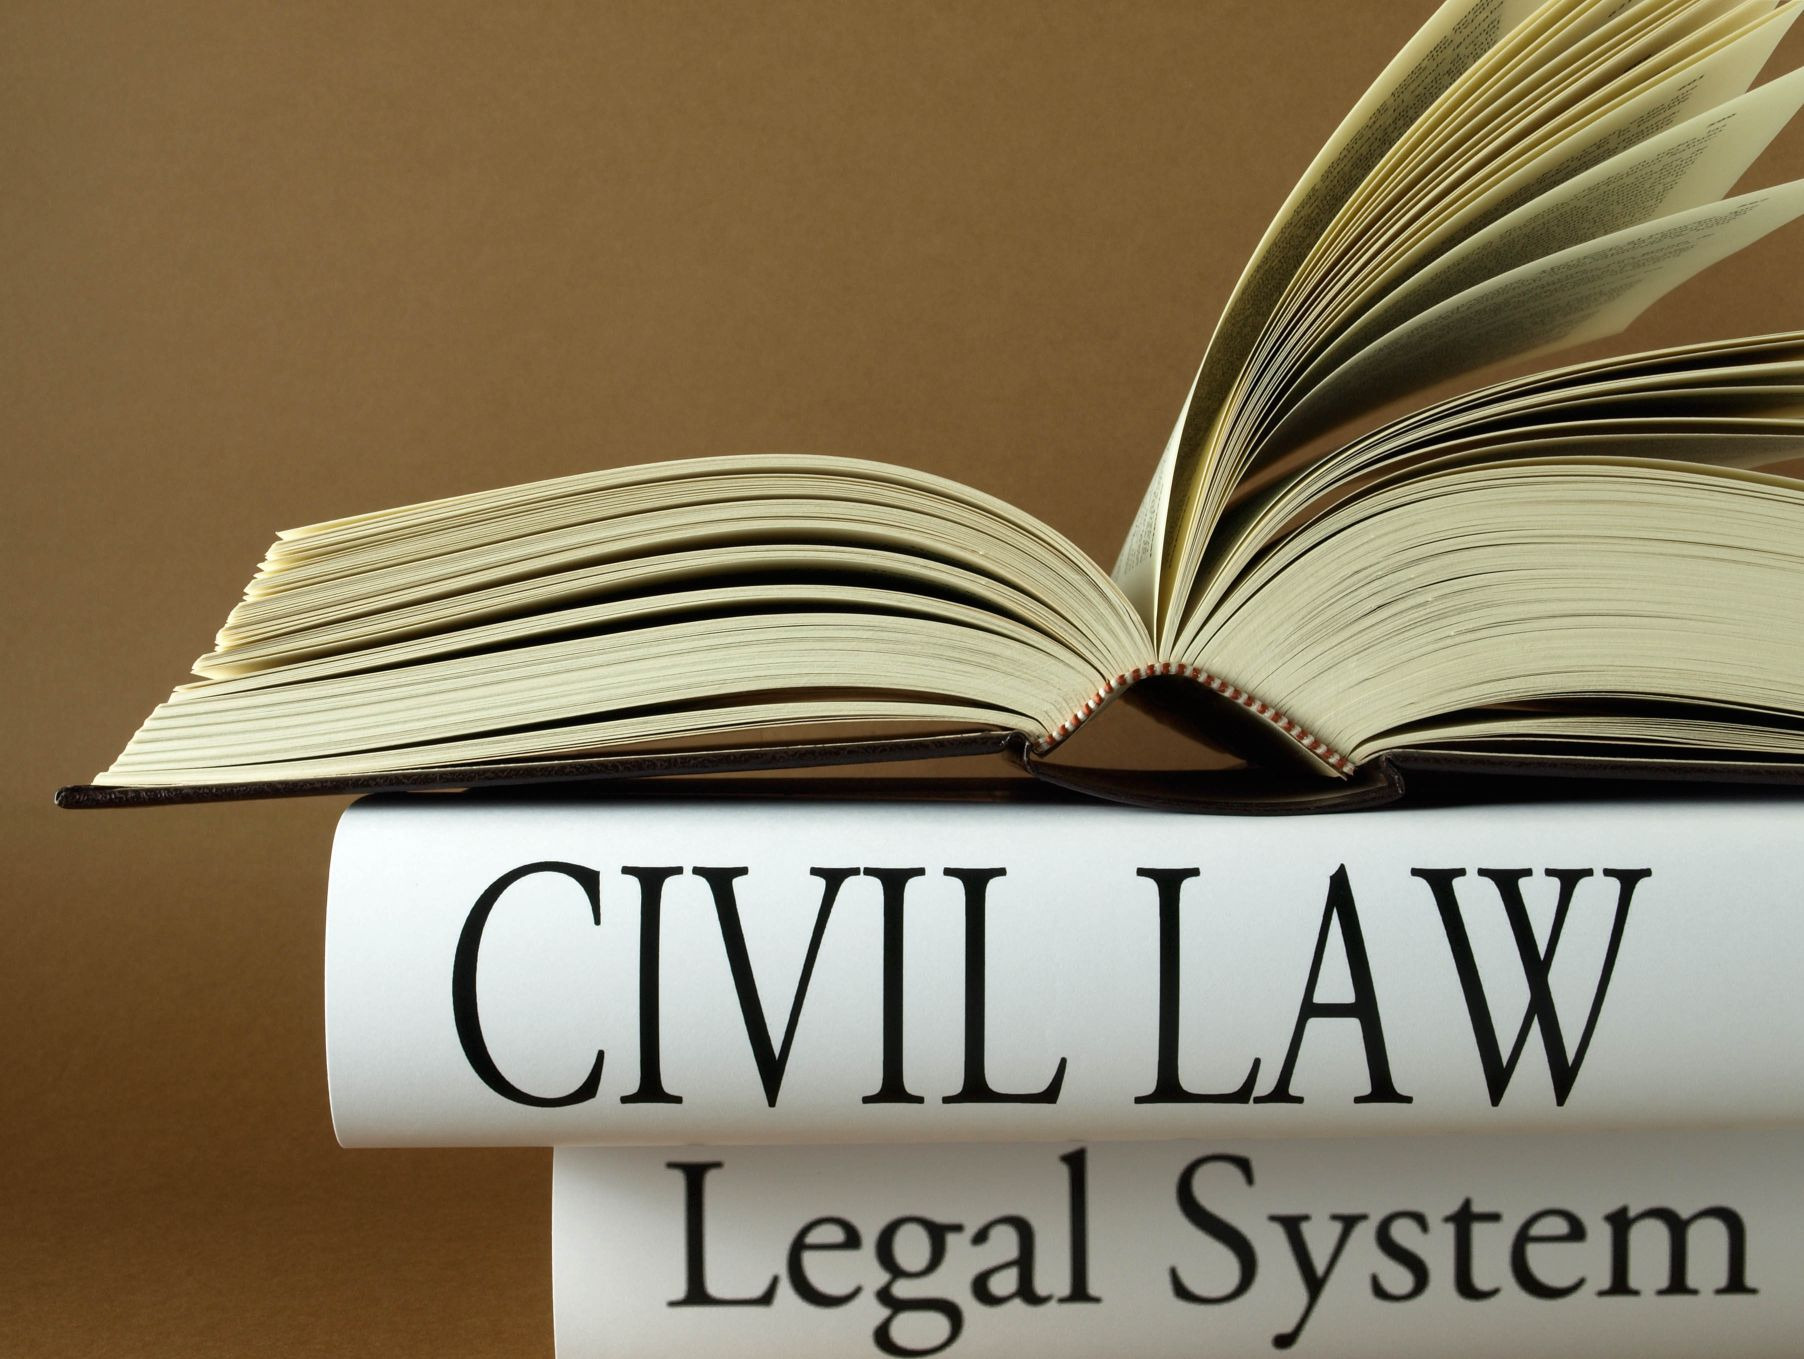 Attorneys & Lawyers - Civil